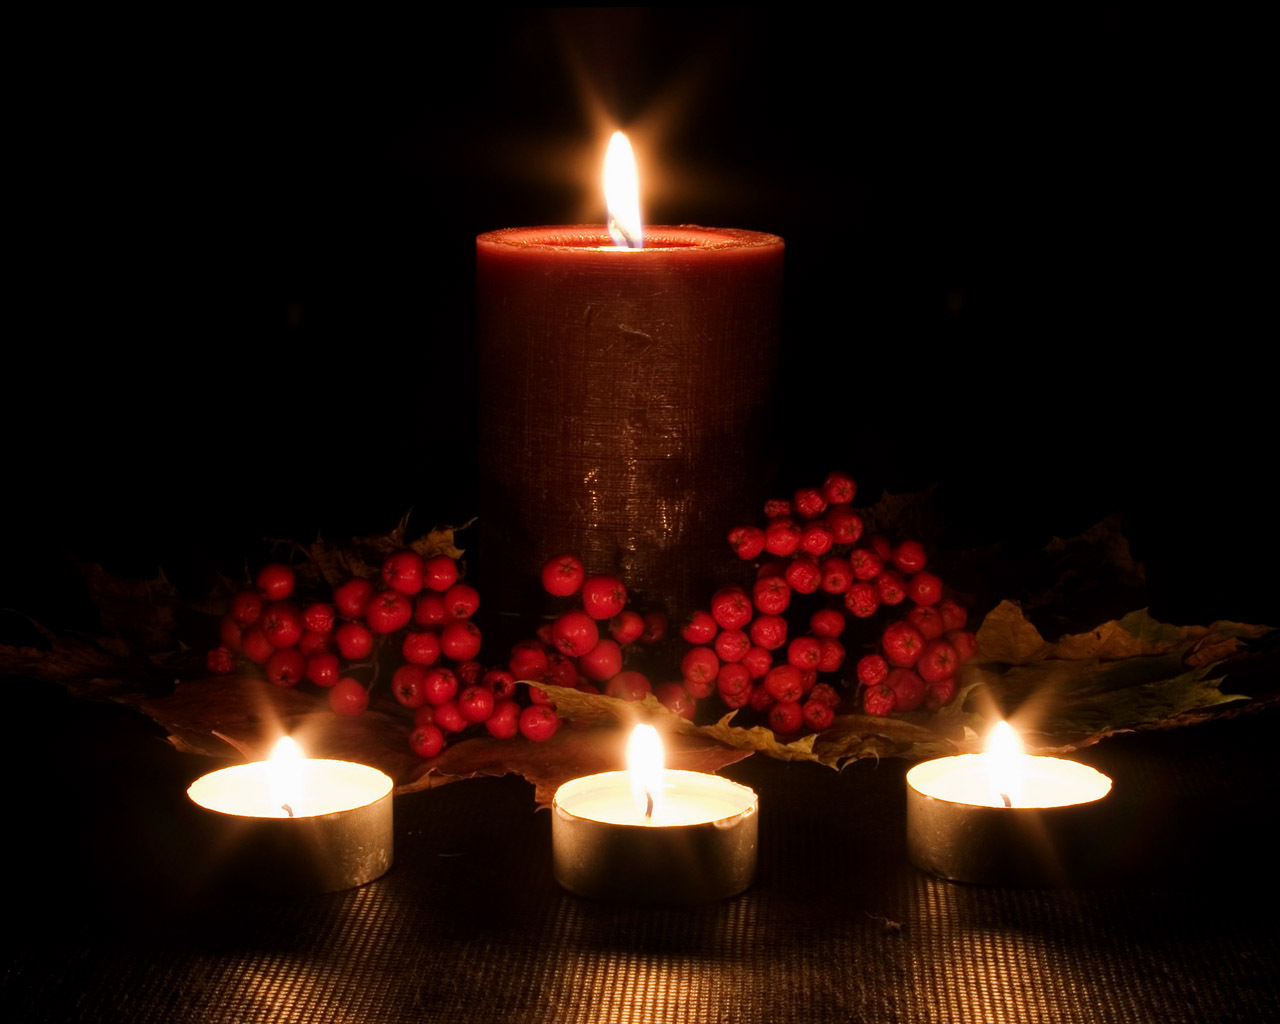 Flickering Firelight Candles Wallpaper 22611292 Fanpop